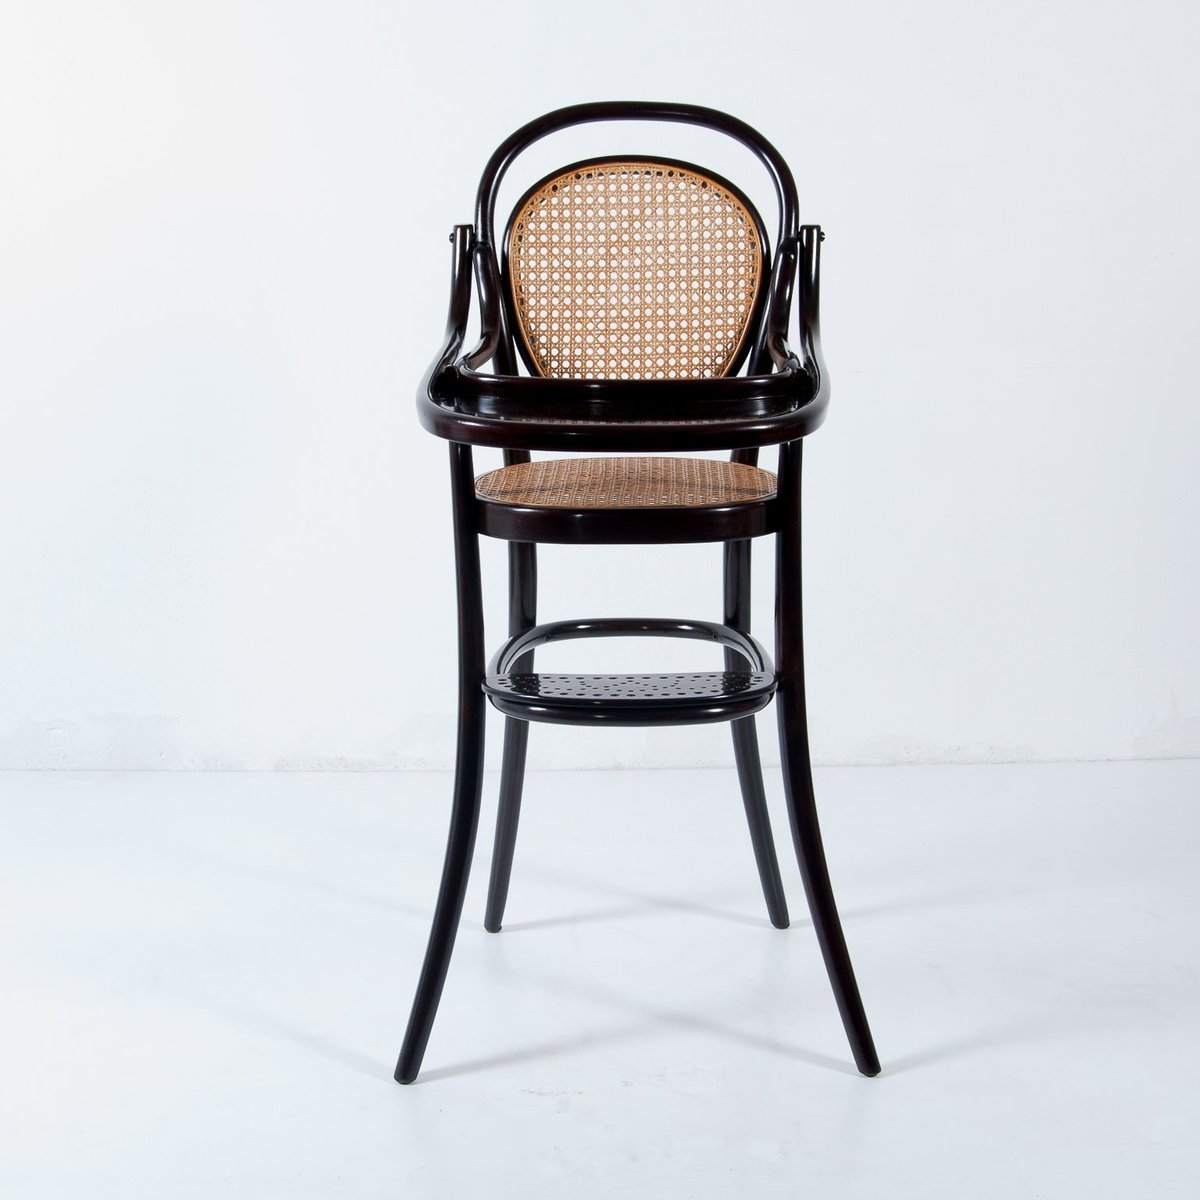 Vintage Nr. 3 Children's Bentwood Highchair from Thonet - Vintage Nr. 3 Children's Bentwood Highchair From Thonet For Sale At